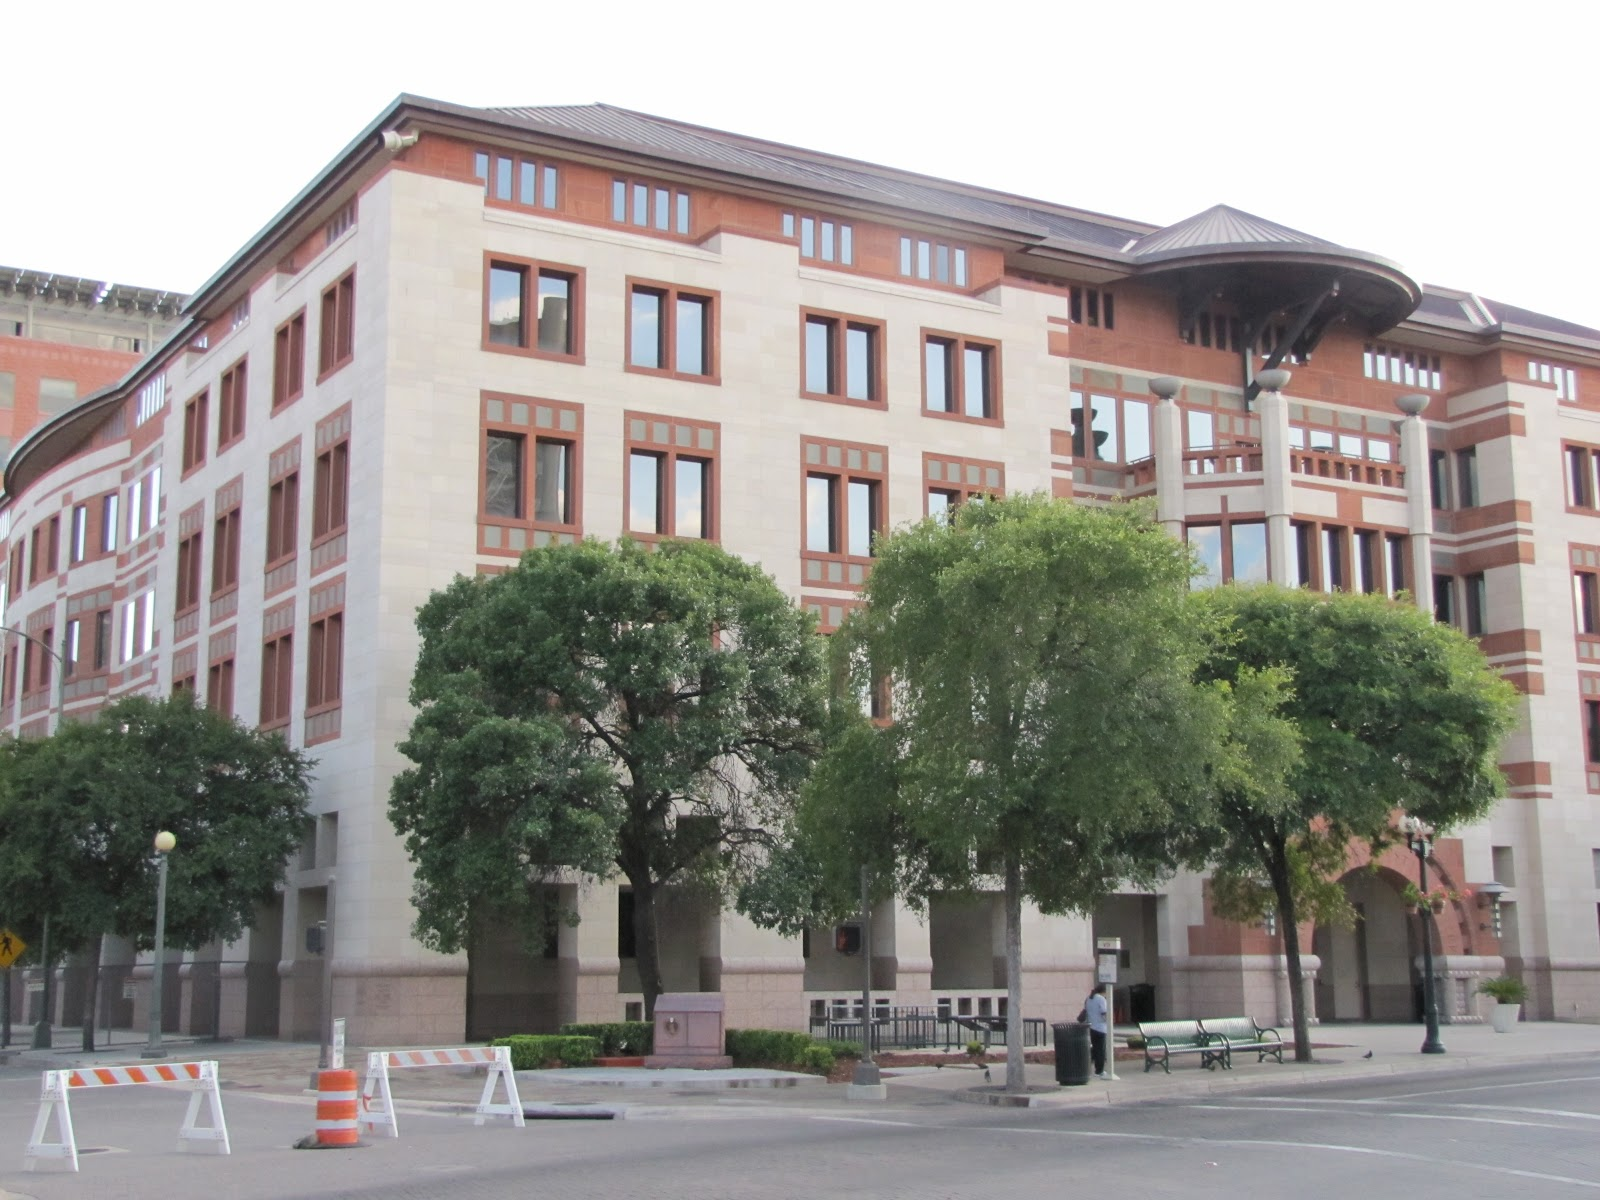 Texas Fourth District Court E Schlagzeug Us Of Appeals And Mapsvg For The Circuit Gabriel Antonio Valverde V State